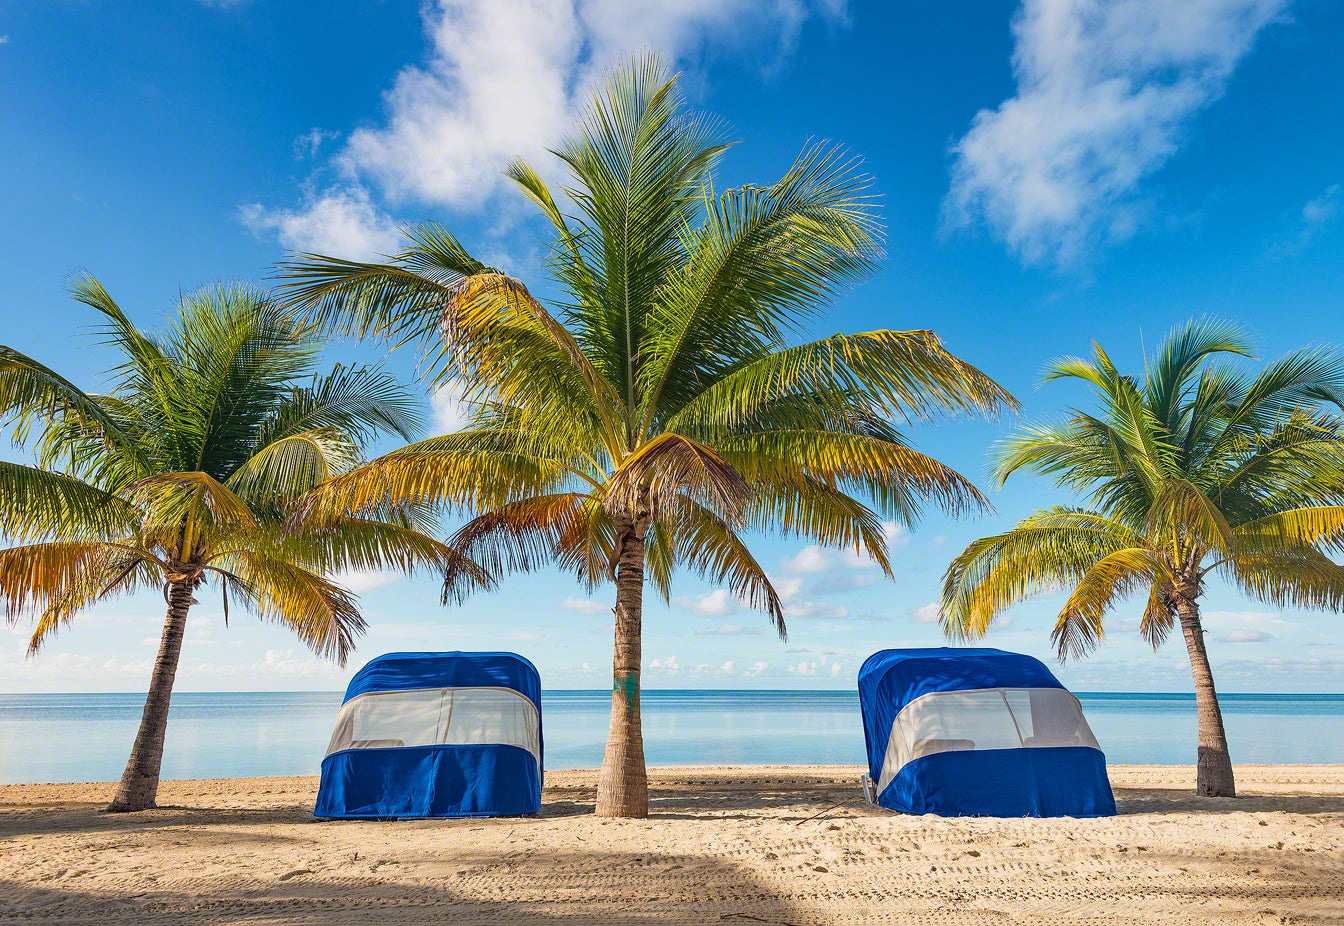 A photo of Cabanas and Coconut Palm Trees on Coco Cay, Bahamas